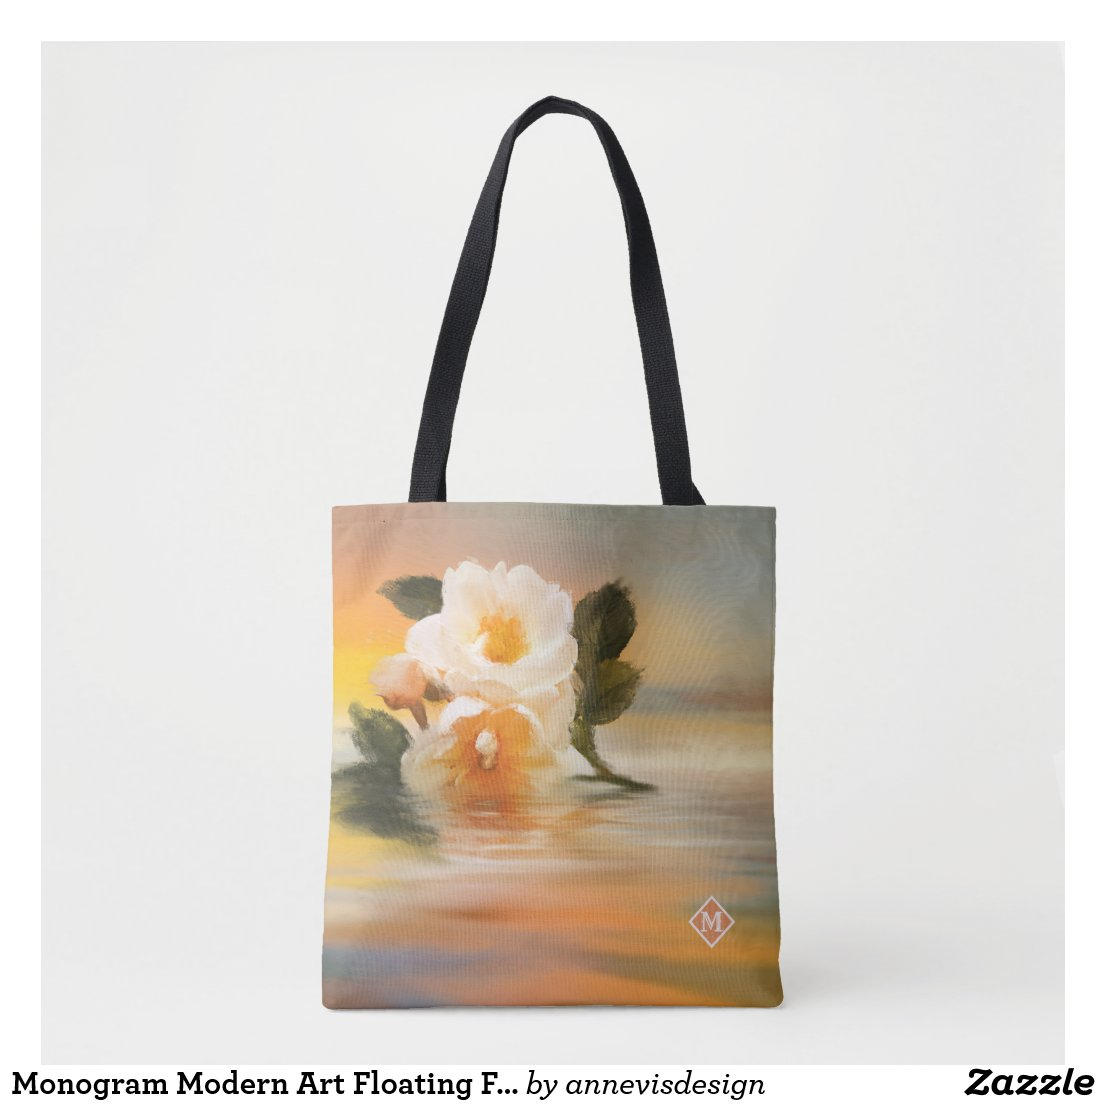 Monogram Modern Art Floating Flowers Tote Bag